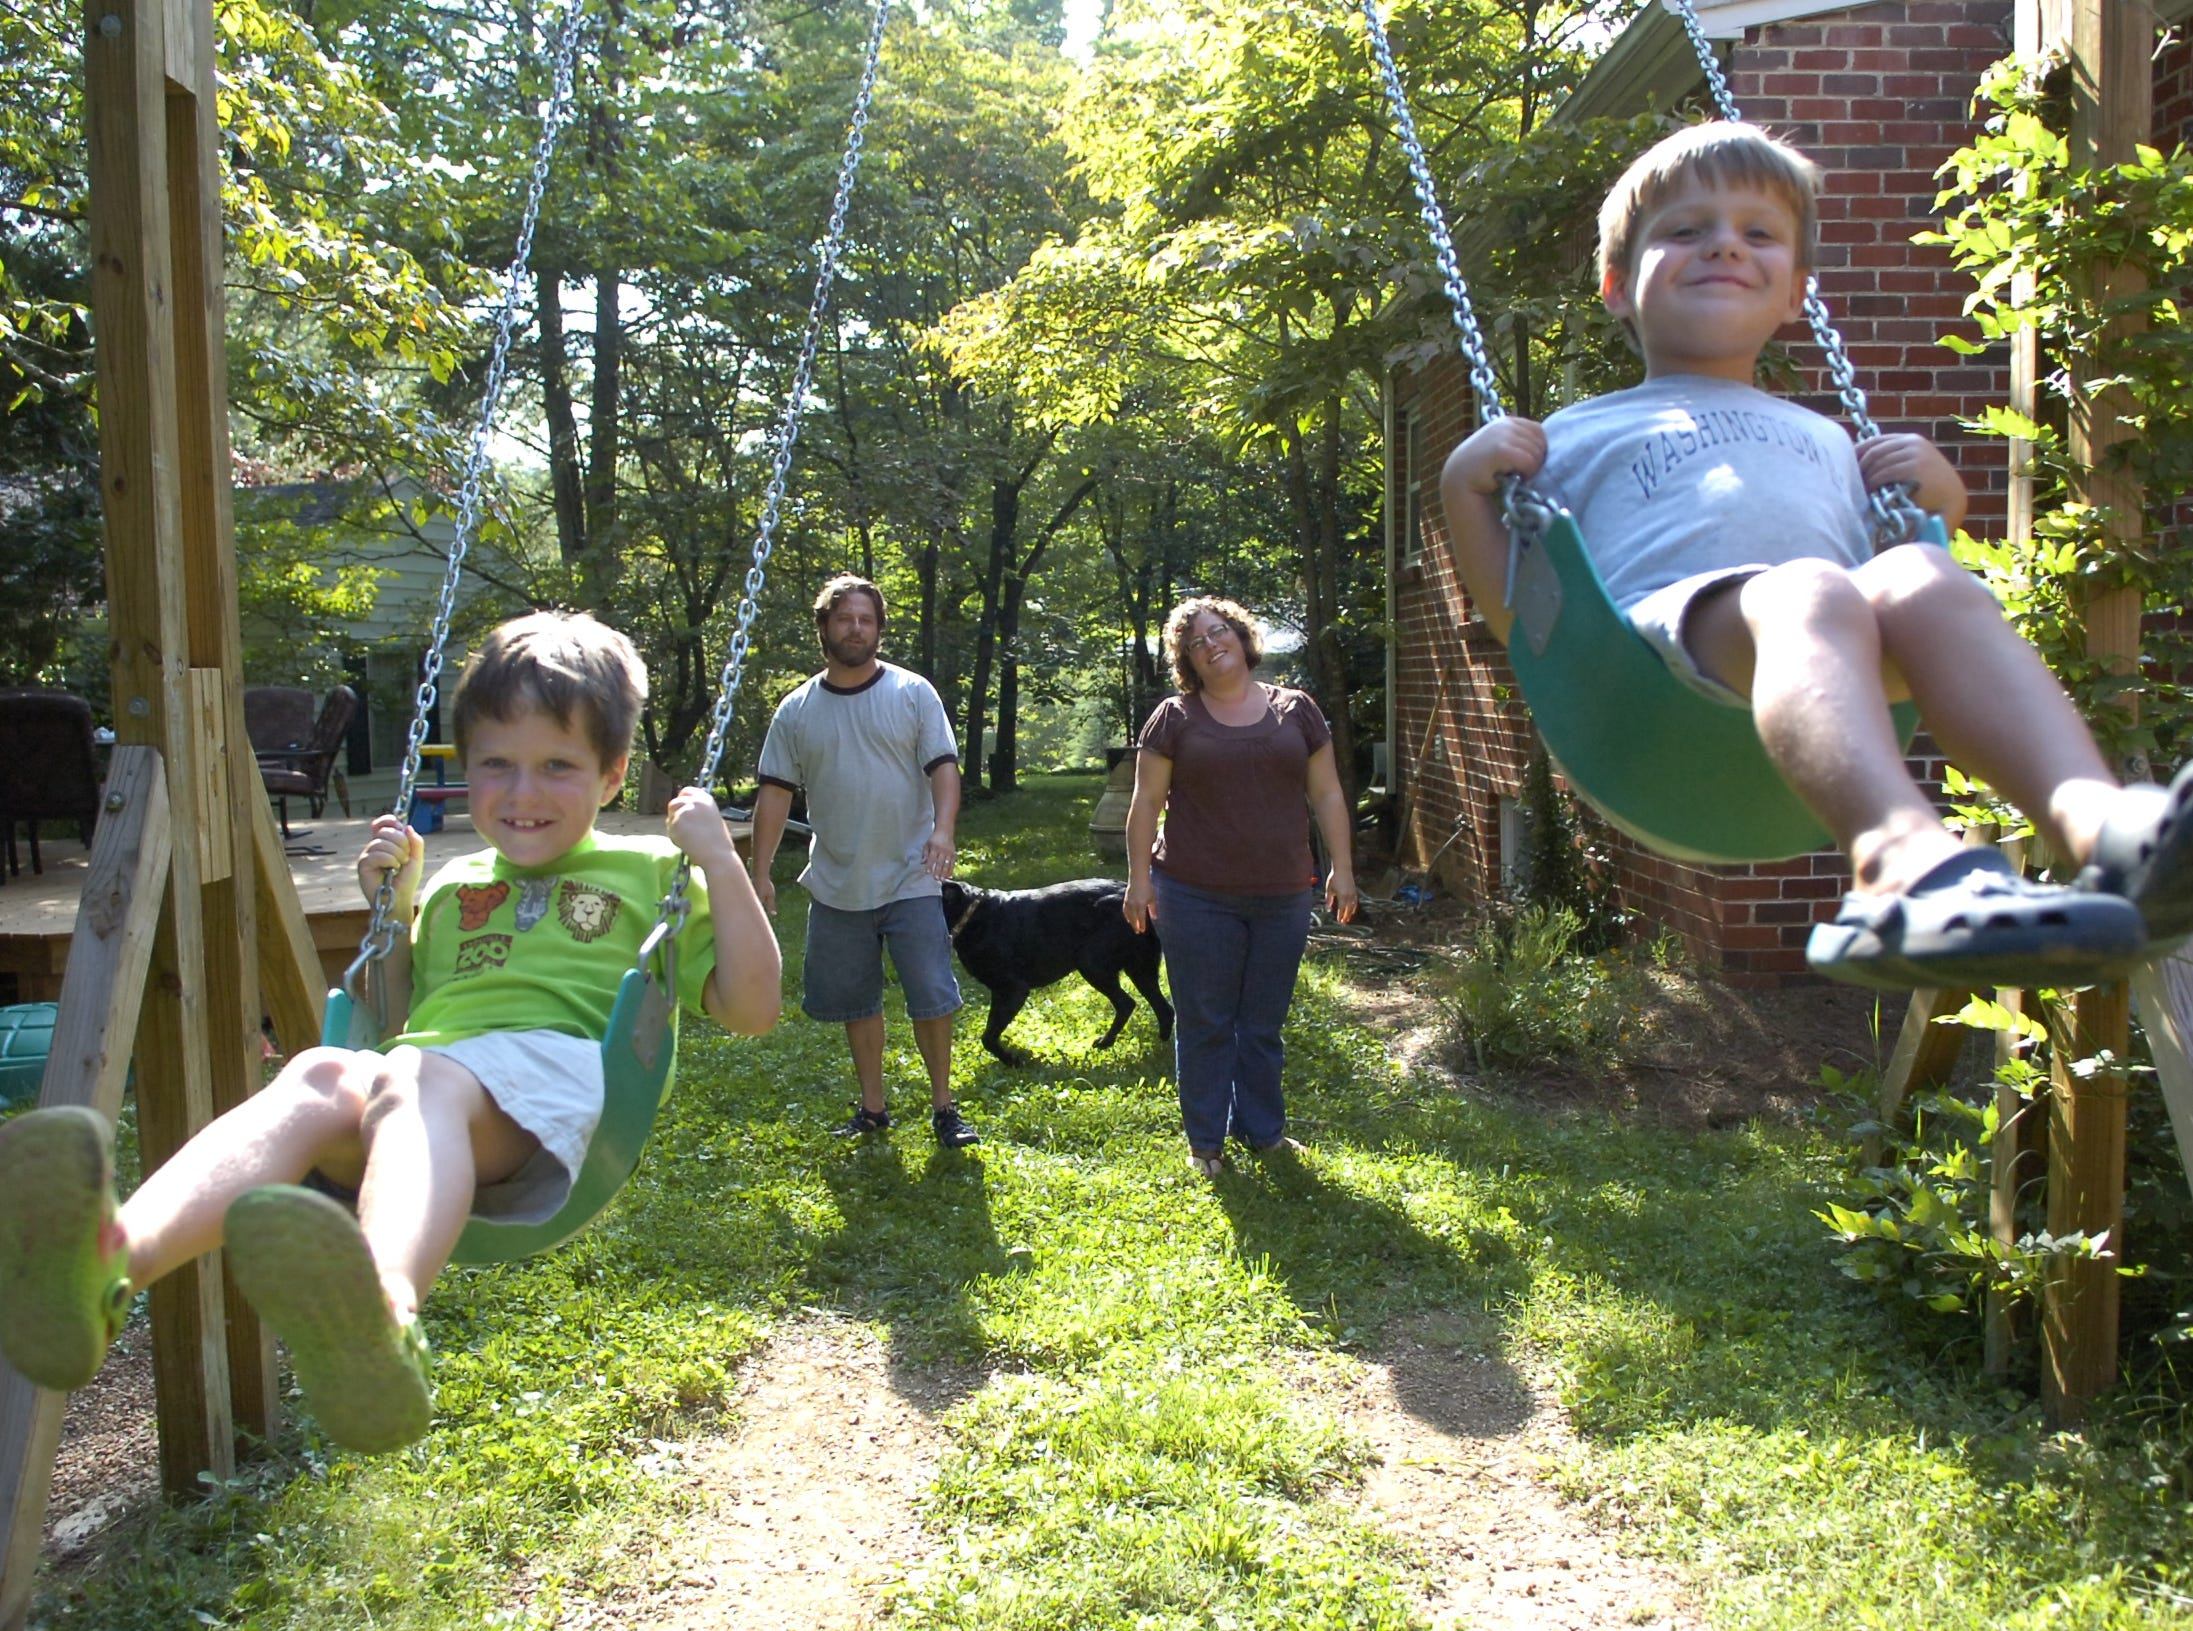 Steve and Tammy Sommers (cq) with their sons Boone 6, and Braxxton (cq) 4, play on the swing set at their home in Knoxville on Friday. Tammy Sommers was wounded when Jim David Adkisson entered the Tennessee Valley Unitarian Universalist Church on with a shot gun on Sunday, July 27, 2008.